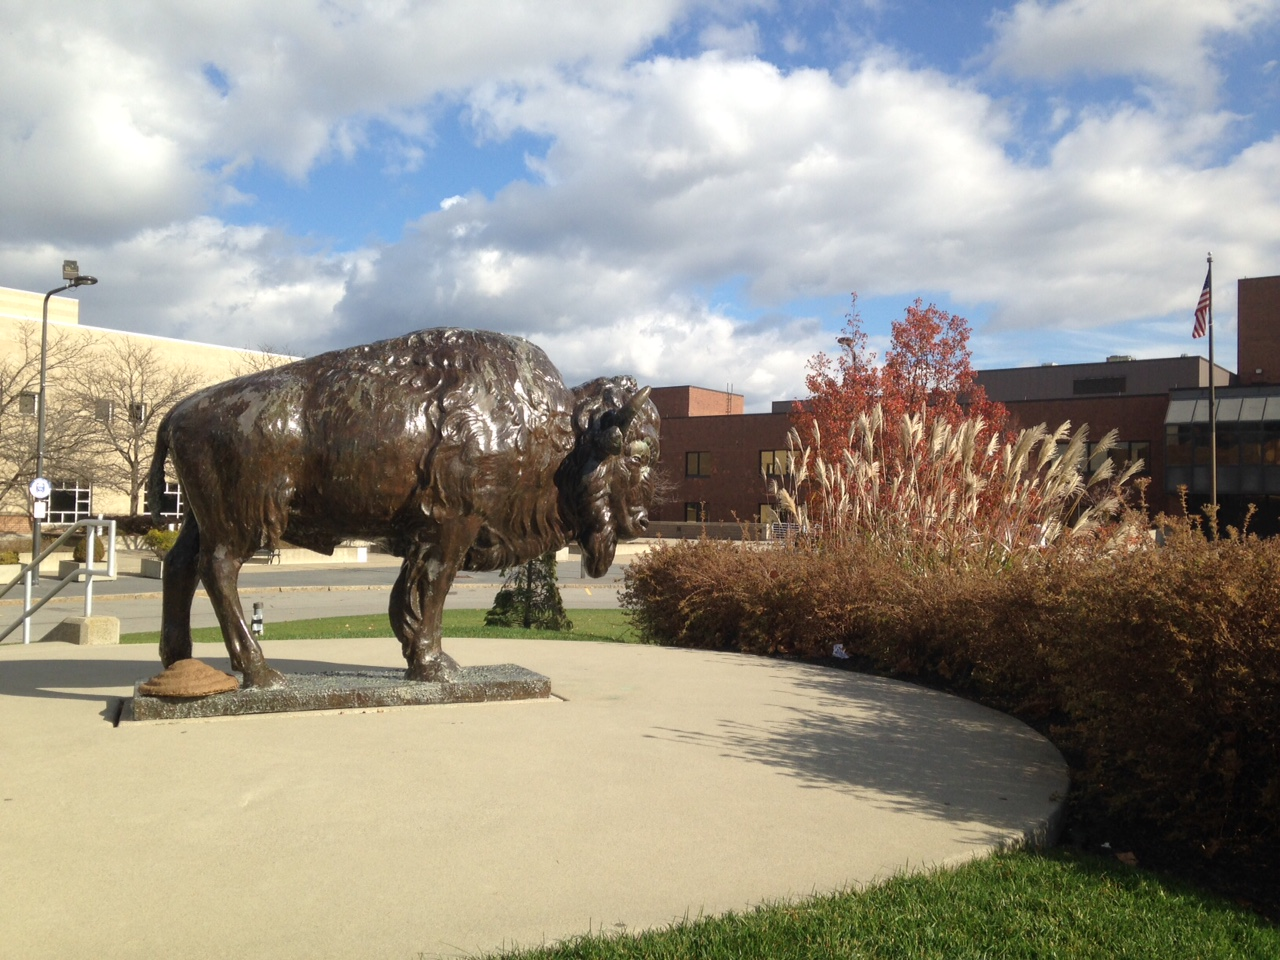 As a statue. This bison is outside the University at Buffalo's North Campus, in front of its Center For the Arts.